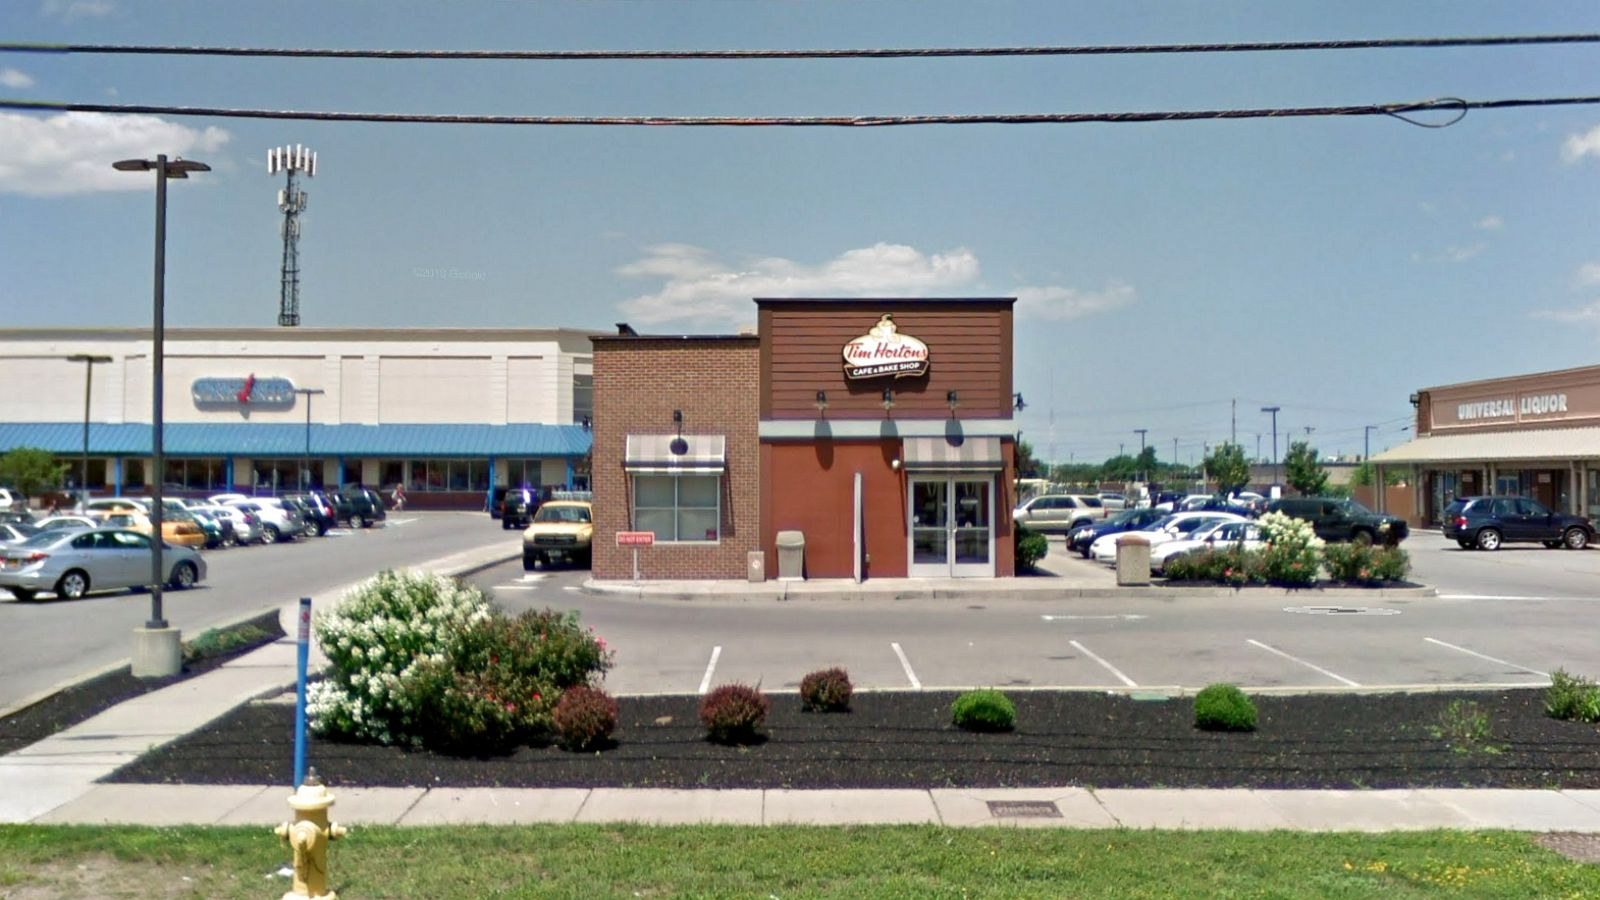 3-year-old boy dead after falling into grease trap at Tim Hortons in Rochester